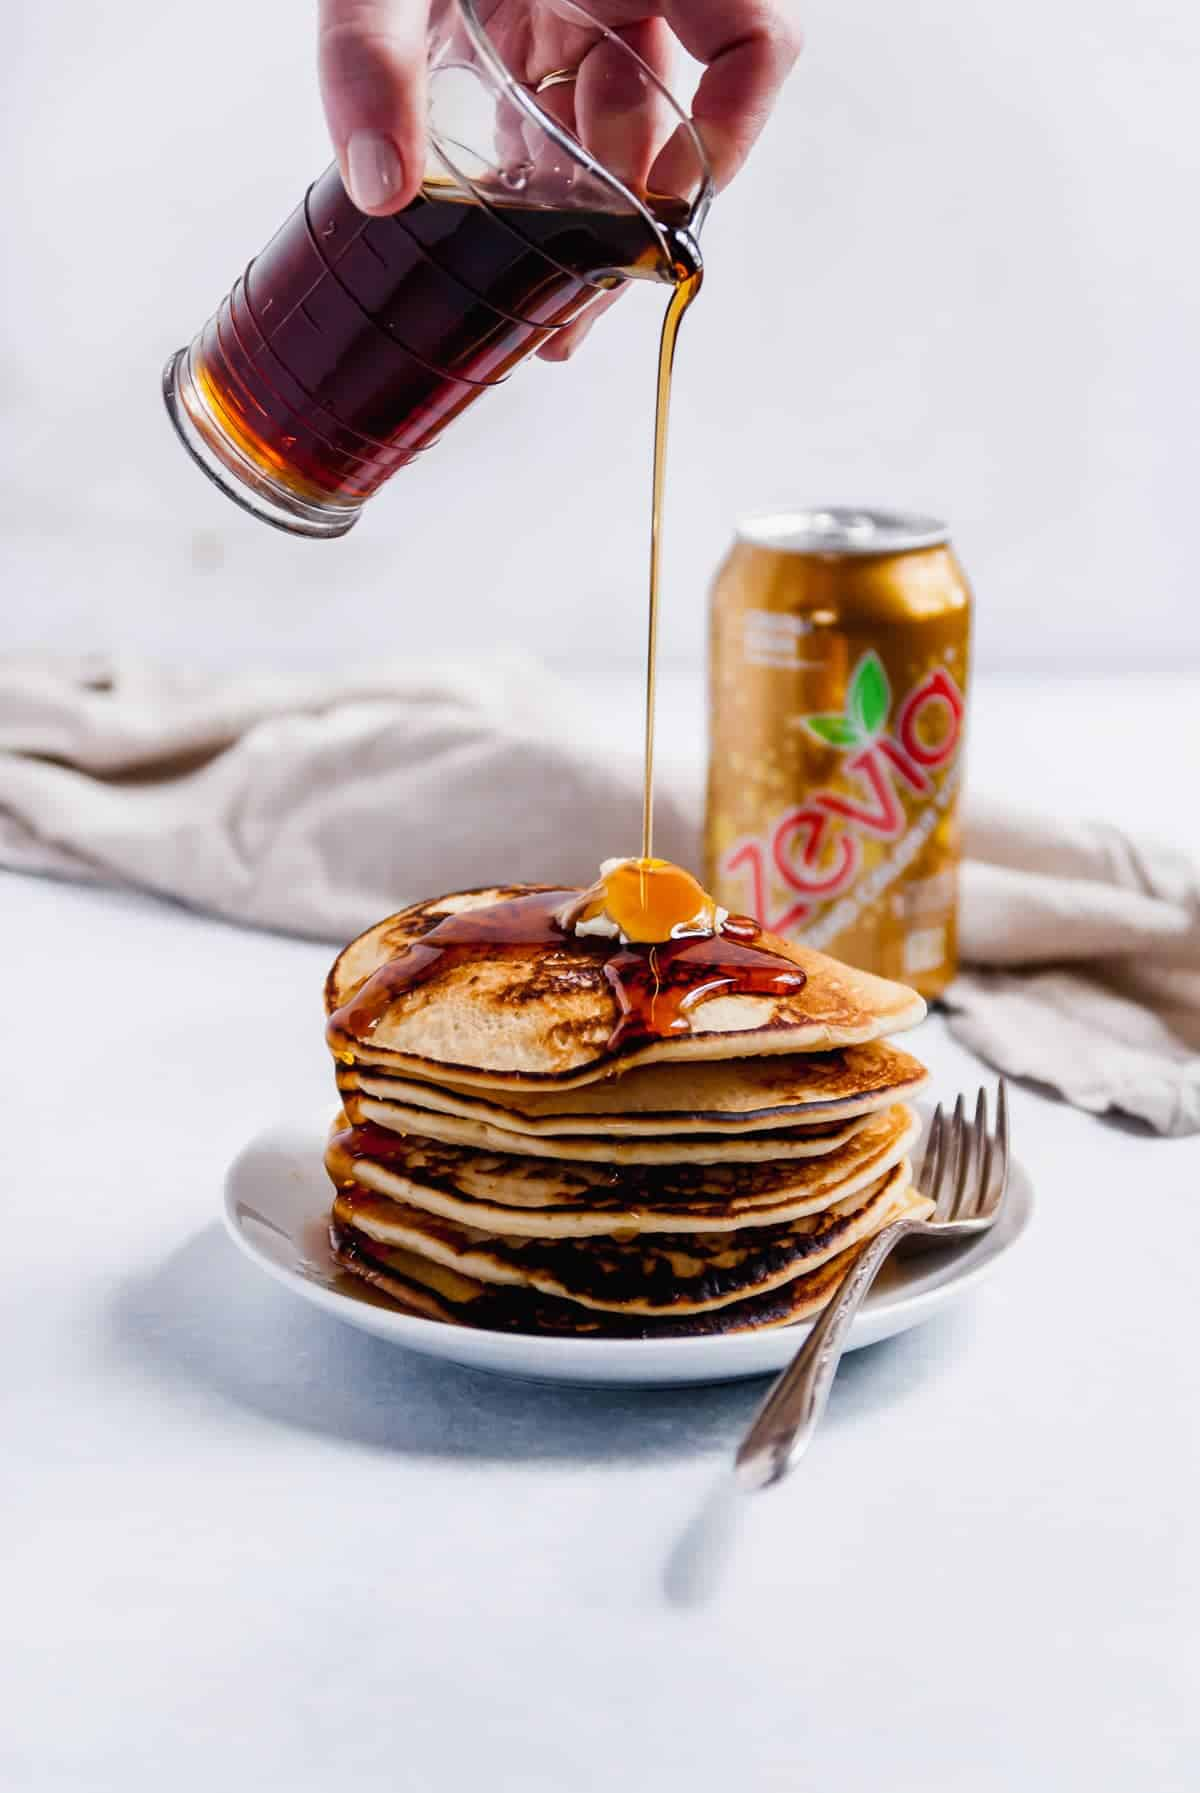 pancakes on a plate with syrup being poured onto them